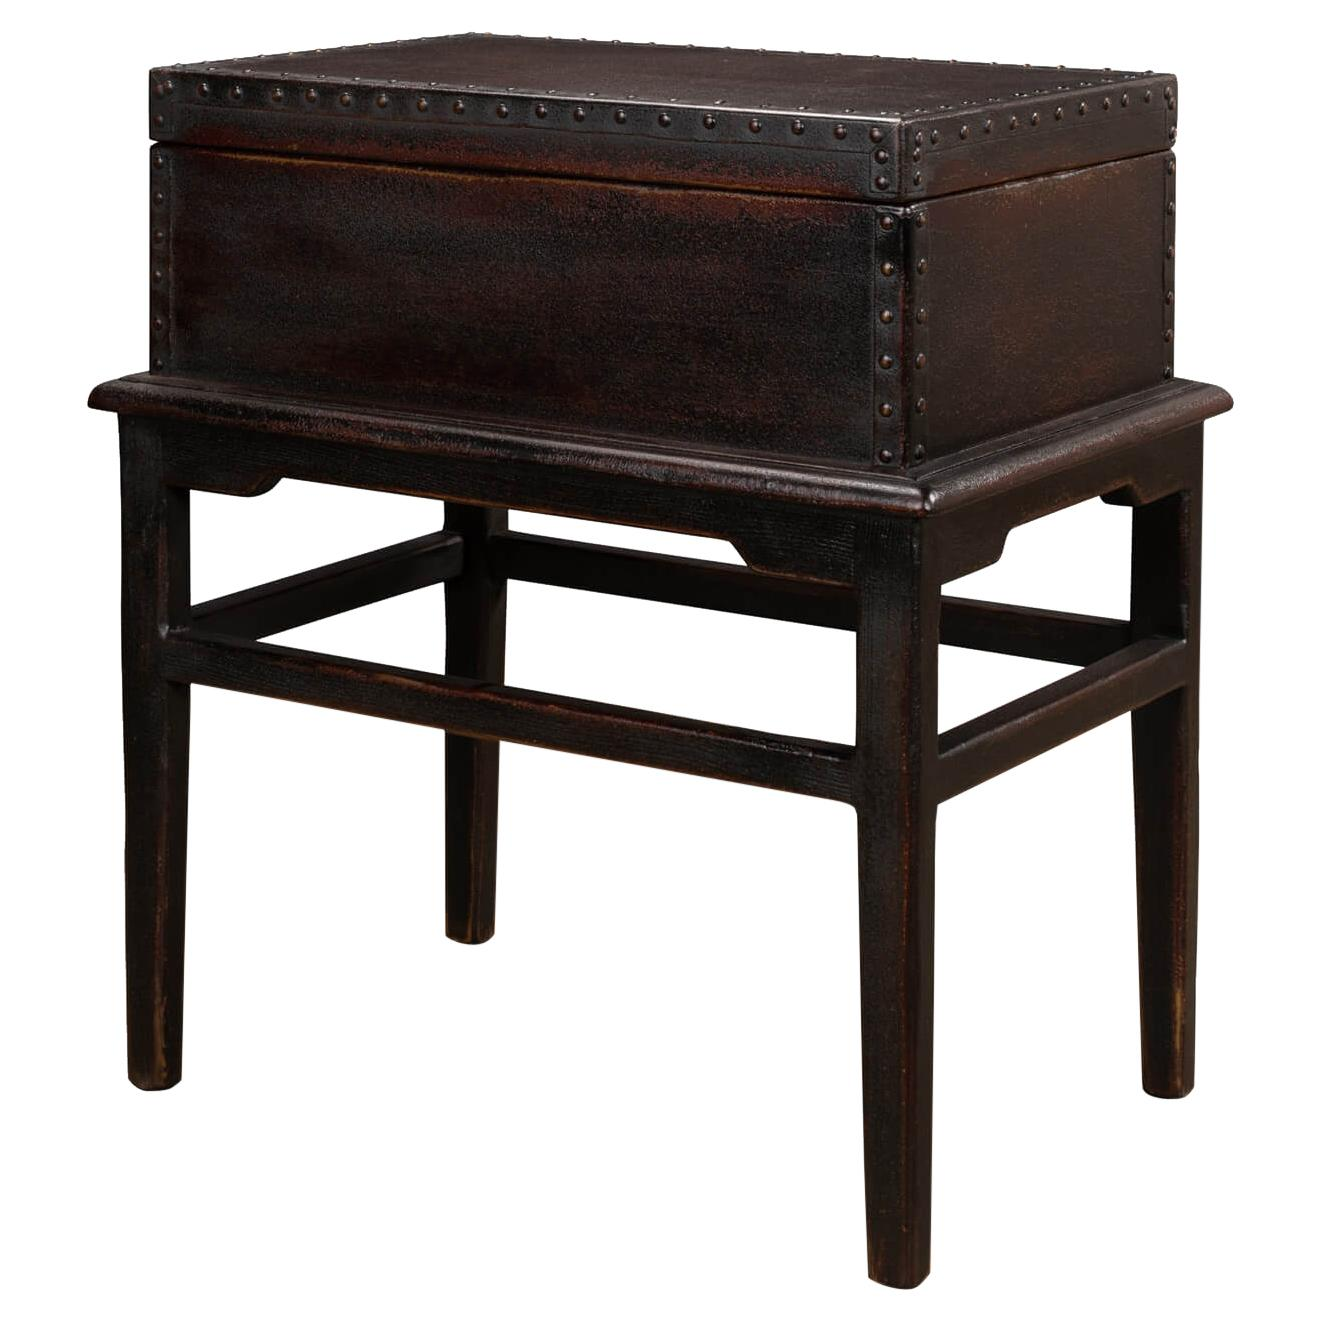 Asian Style Leather Box on Stand